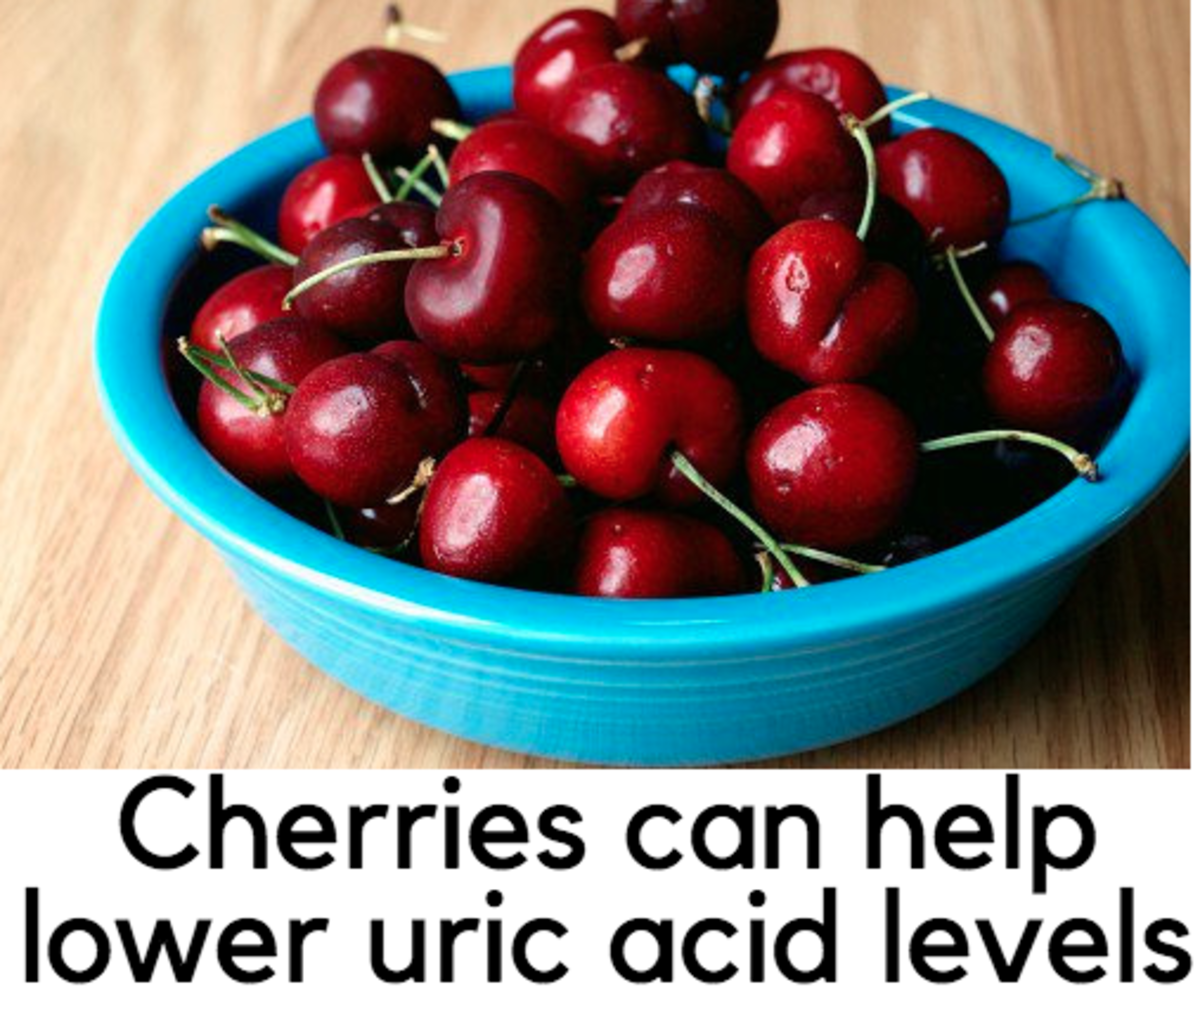 Cherries can help lower uric acid serum levels.